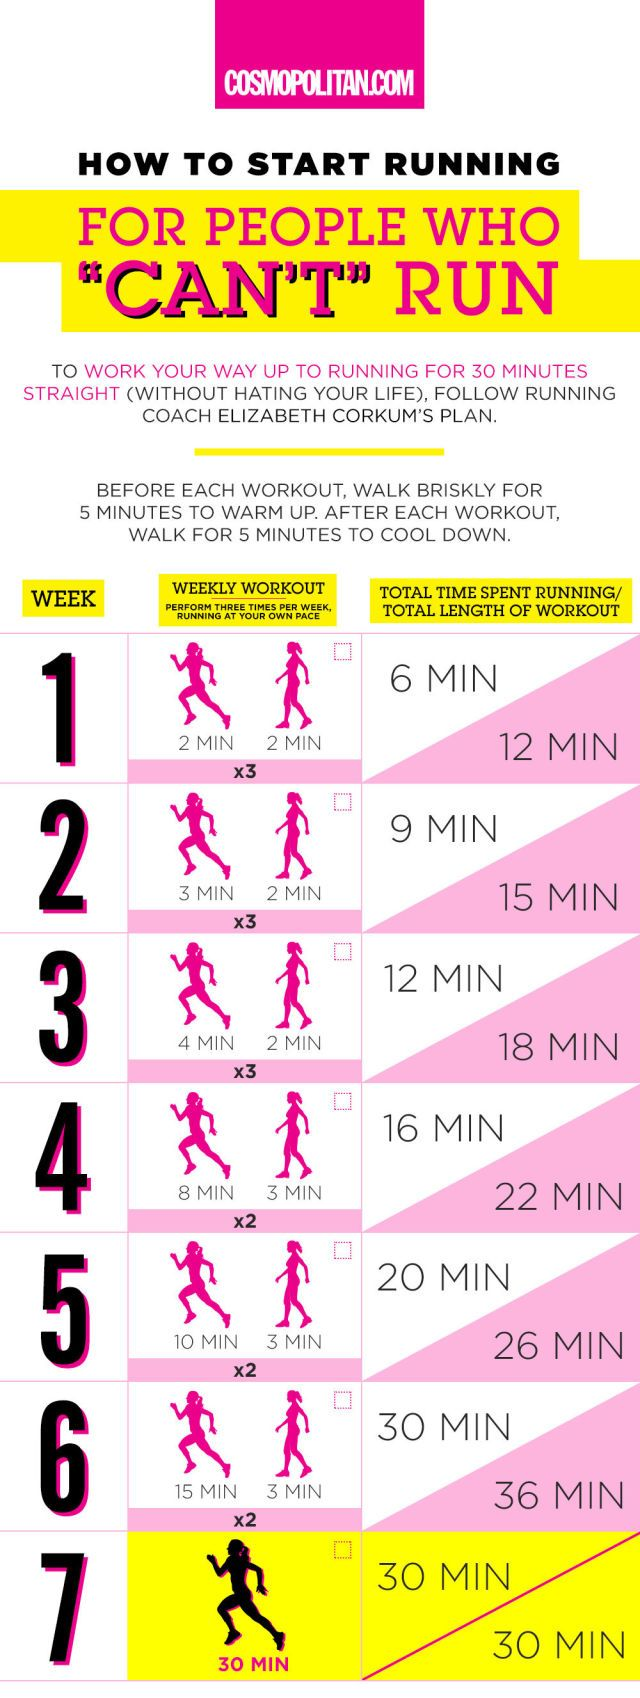 How to Become a Runner Even if You Think You Hate Running  - Cosmopolitan.com - I'm not sure this would work for me, but I'm pinning it just in case. Even if I did this, I wouldn't start until about April because it's far too cold outside now.